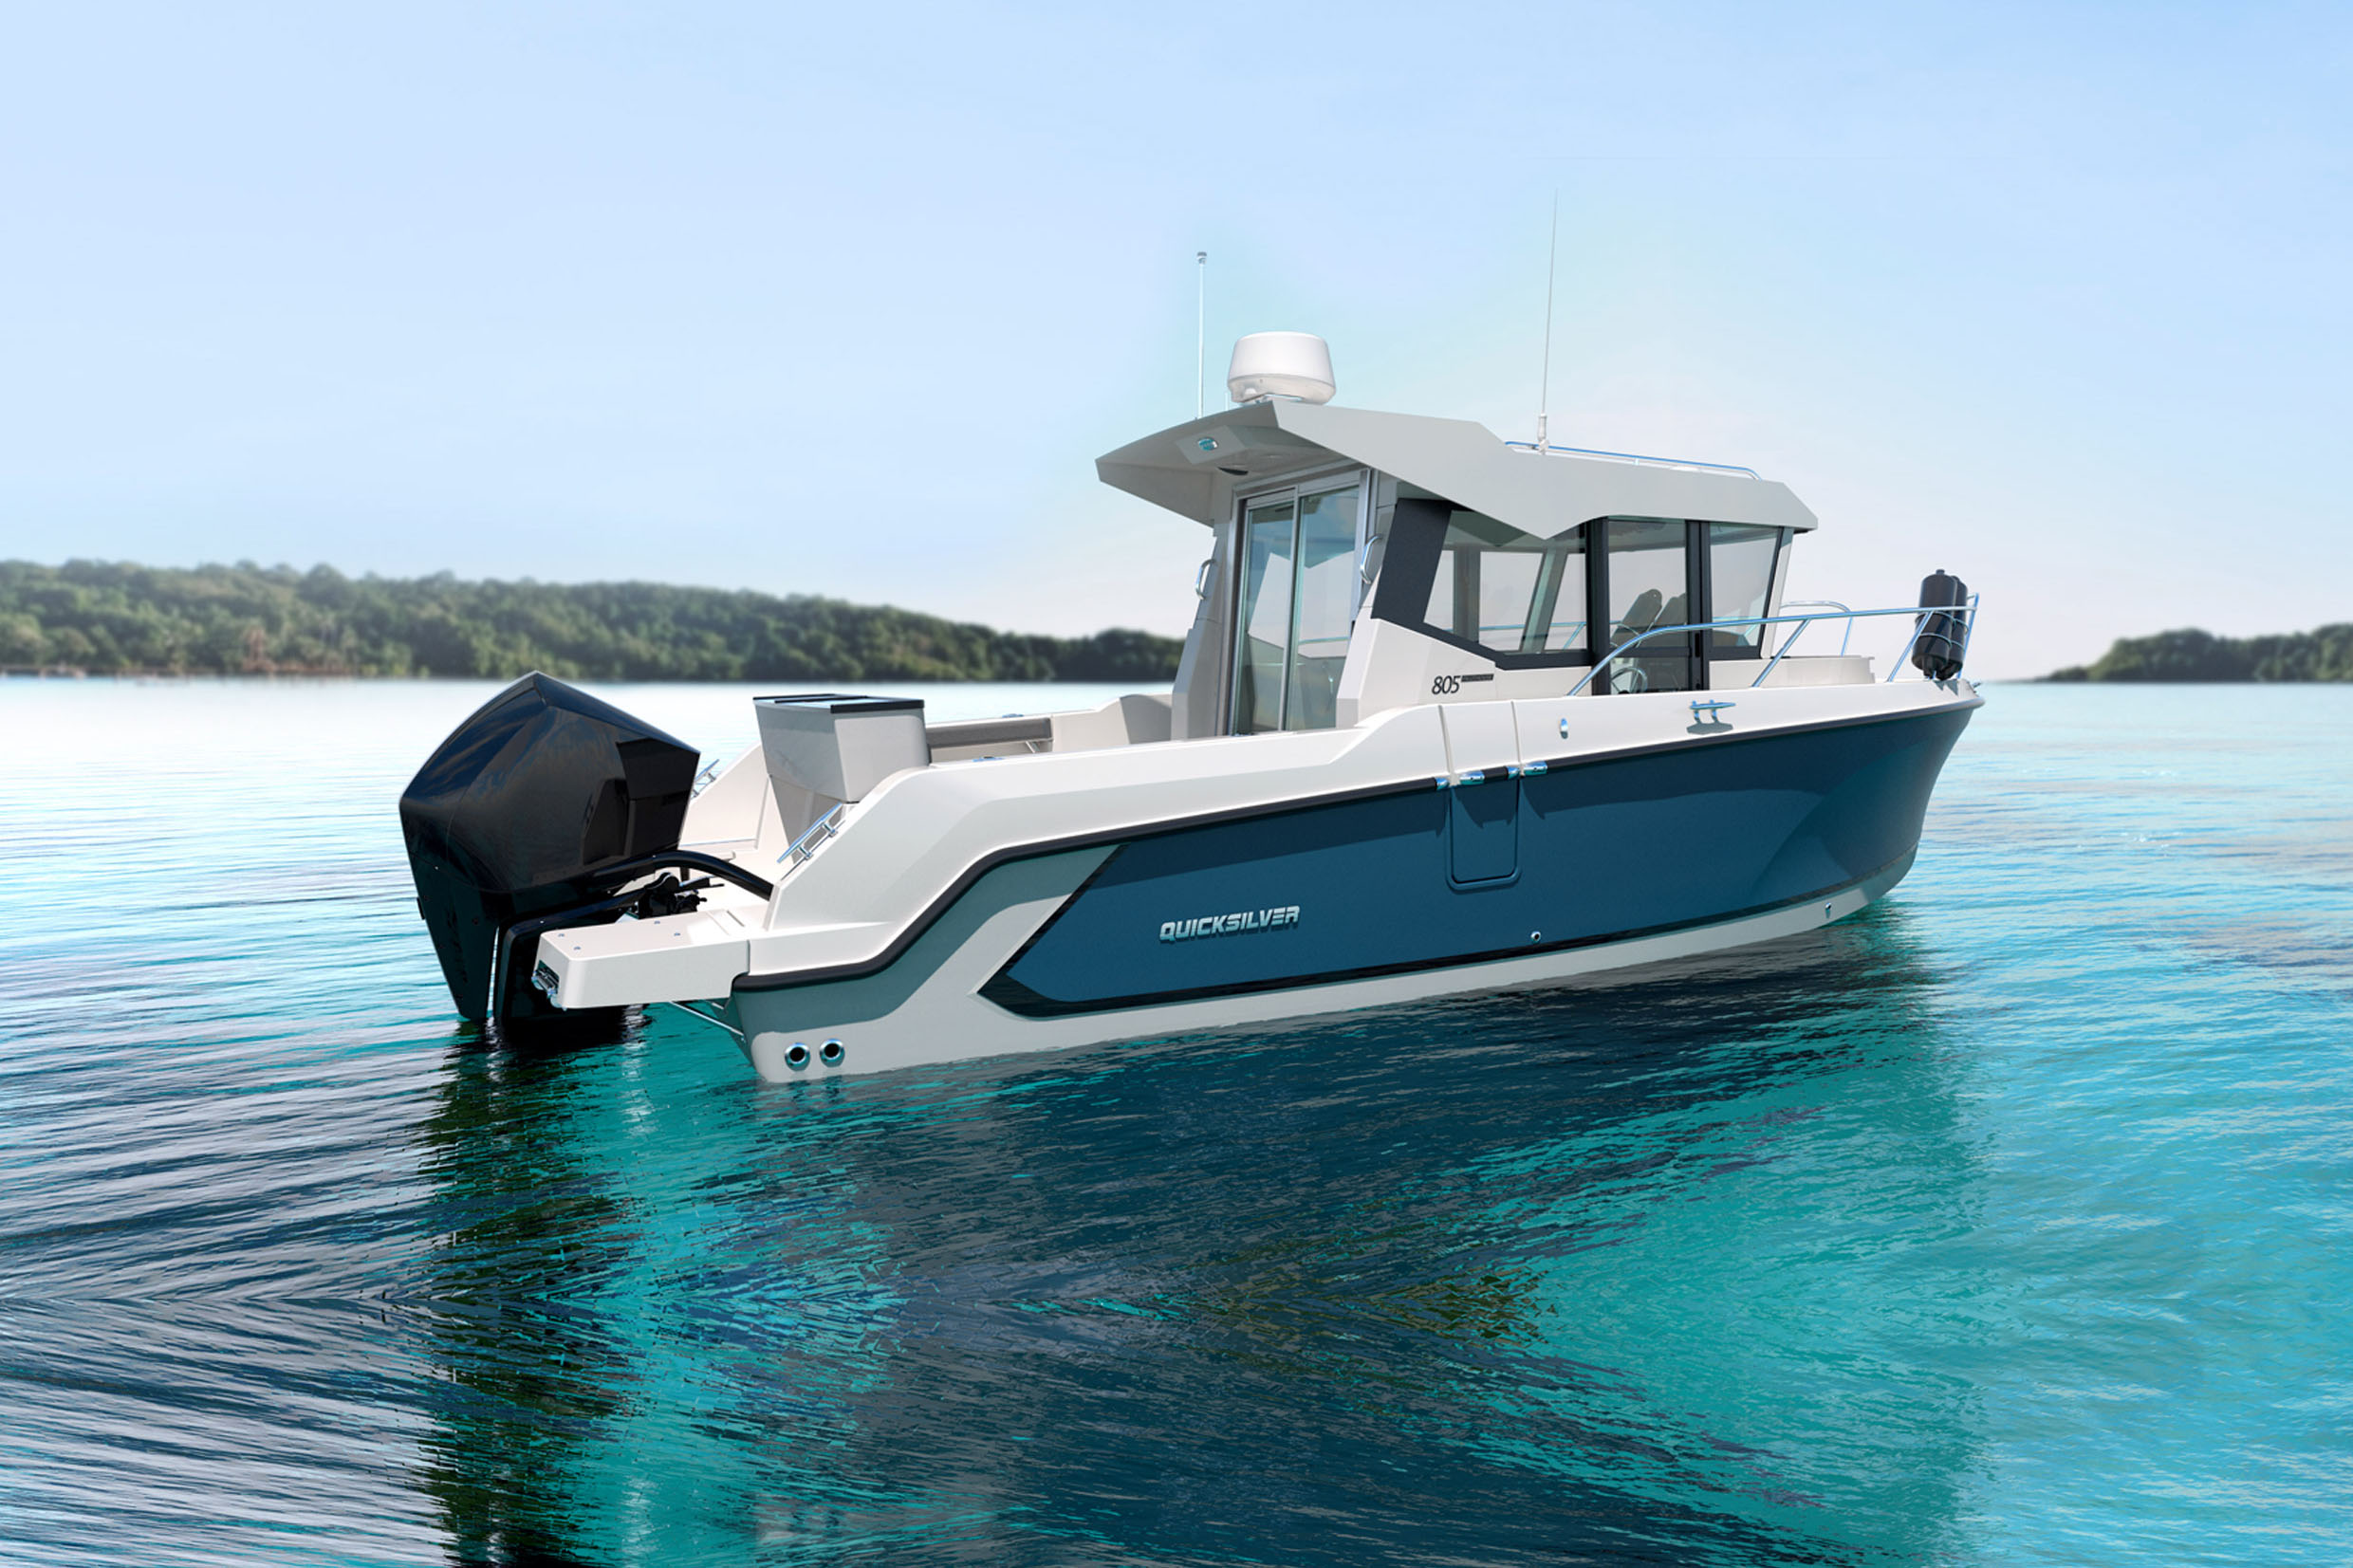 Fish be aware: the 805 Pilothouse is on its way